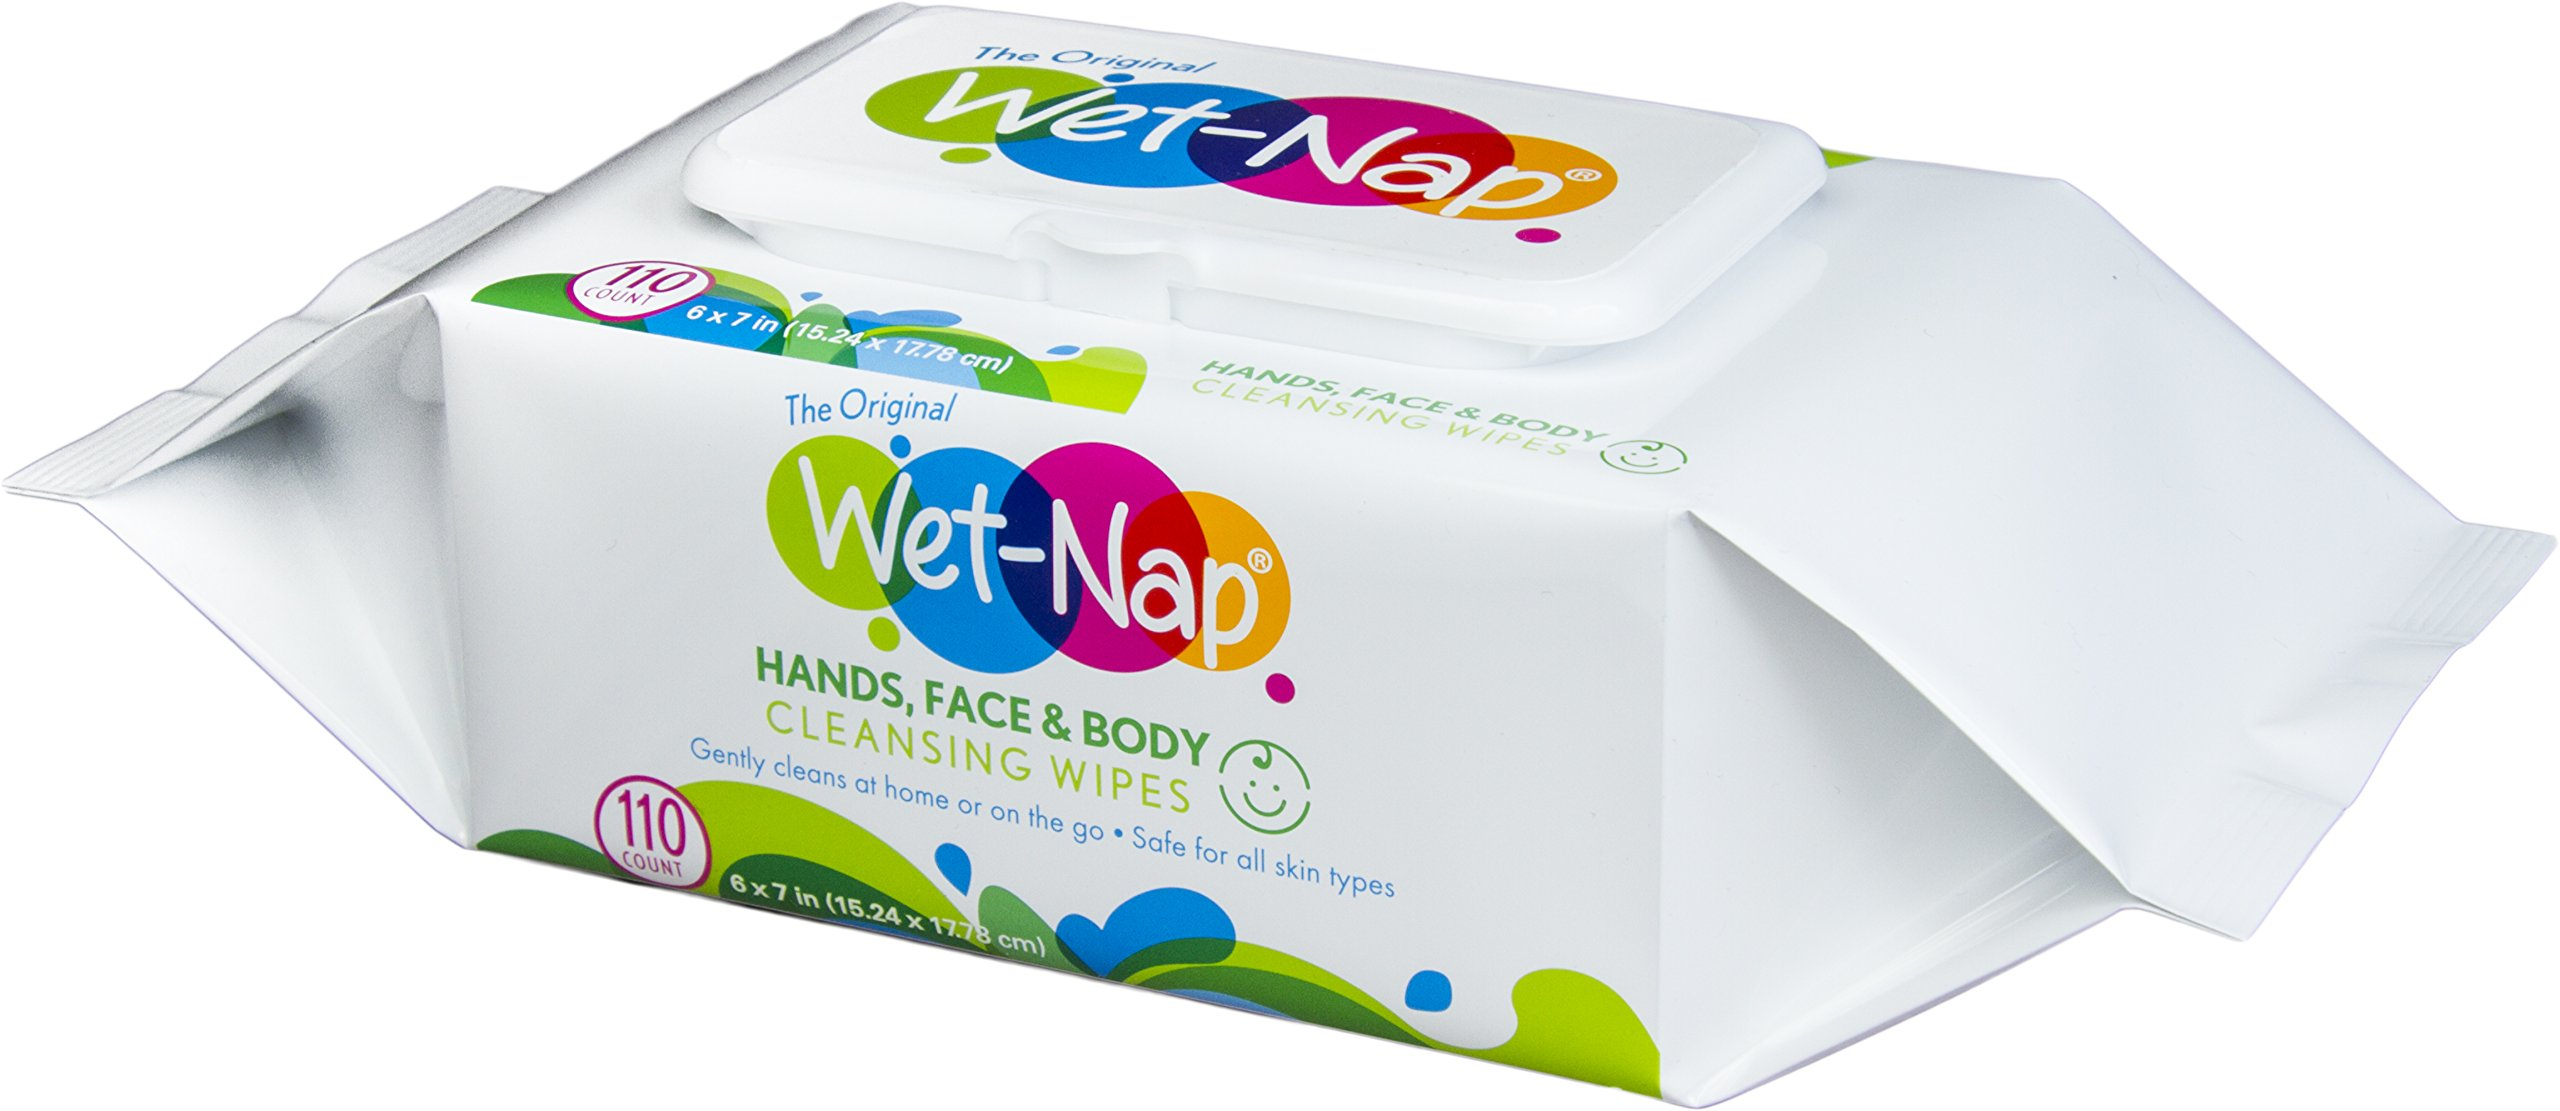 Wet-Nap Hands and Face Cleansing Wipes, 110 Count (Pack of  6)